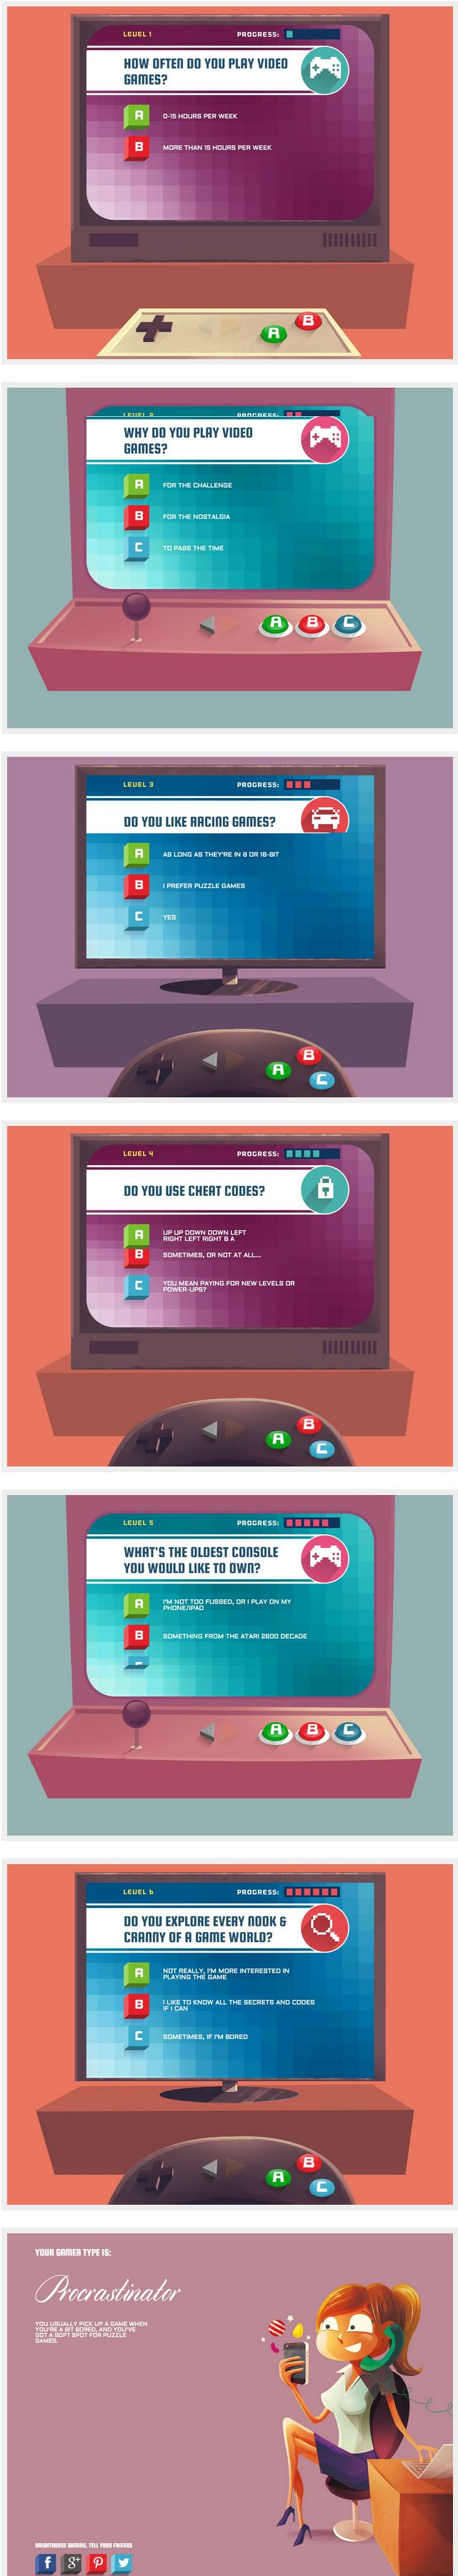 What Type Of Gamer Are You infographic